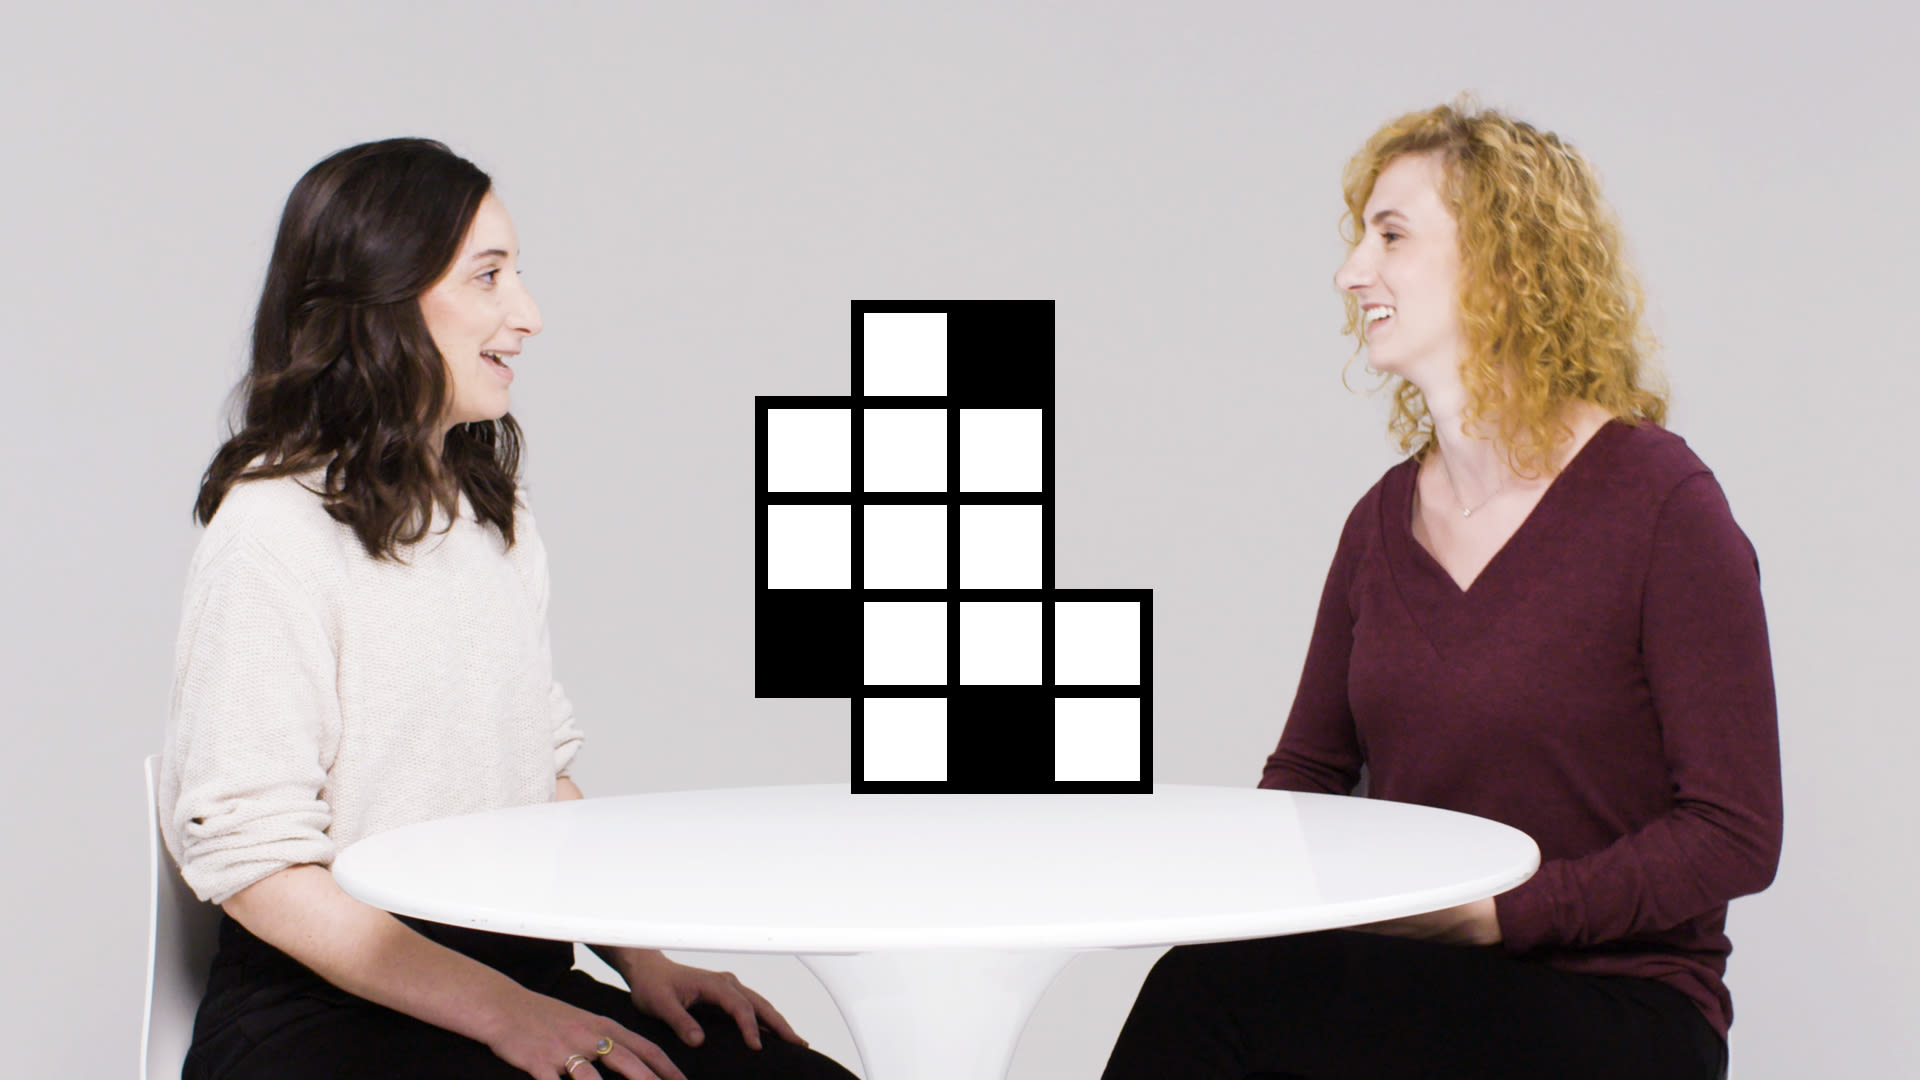 Watch The Quest For The Perfect Crossword Clue The New Yorker Video Cne Newyorker Com The New Yorker